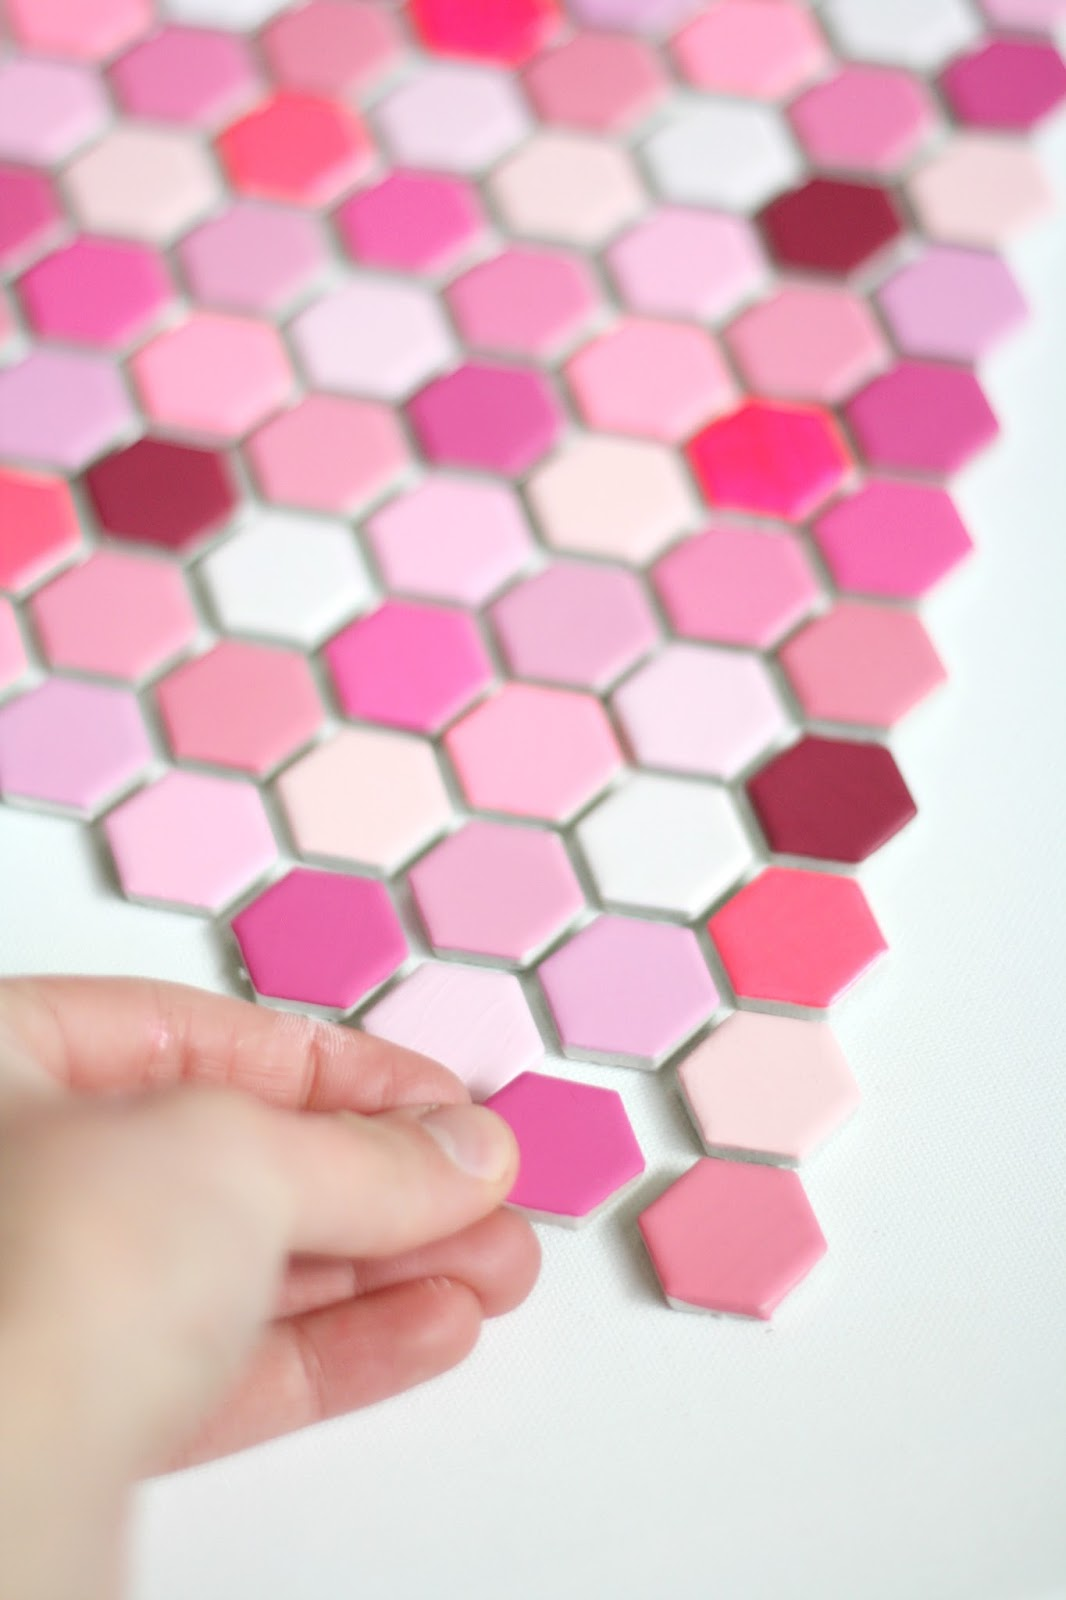 diy hexagon tile heart art 4